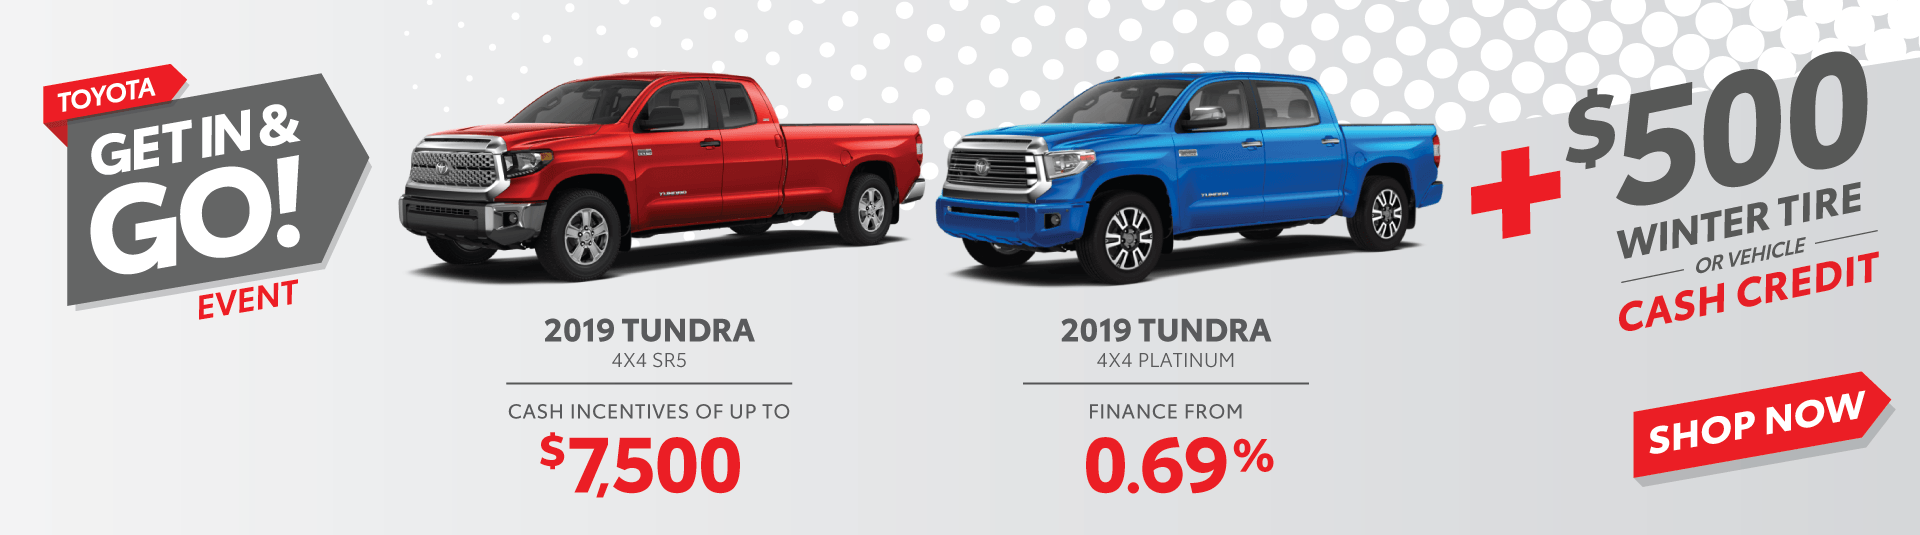 Get-In-and-Go-Tundra-offer